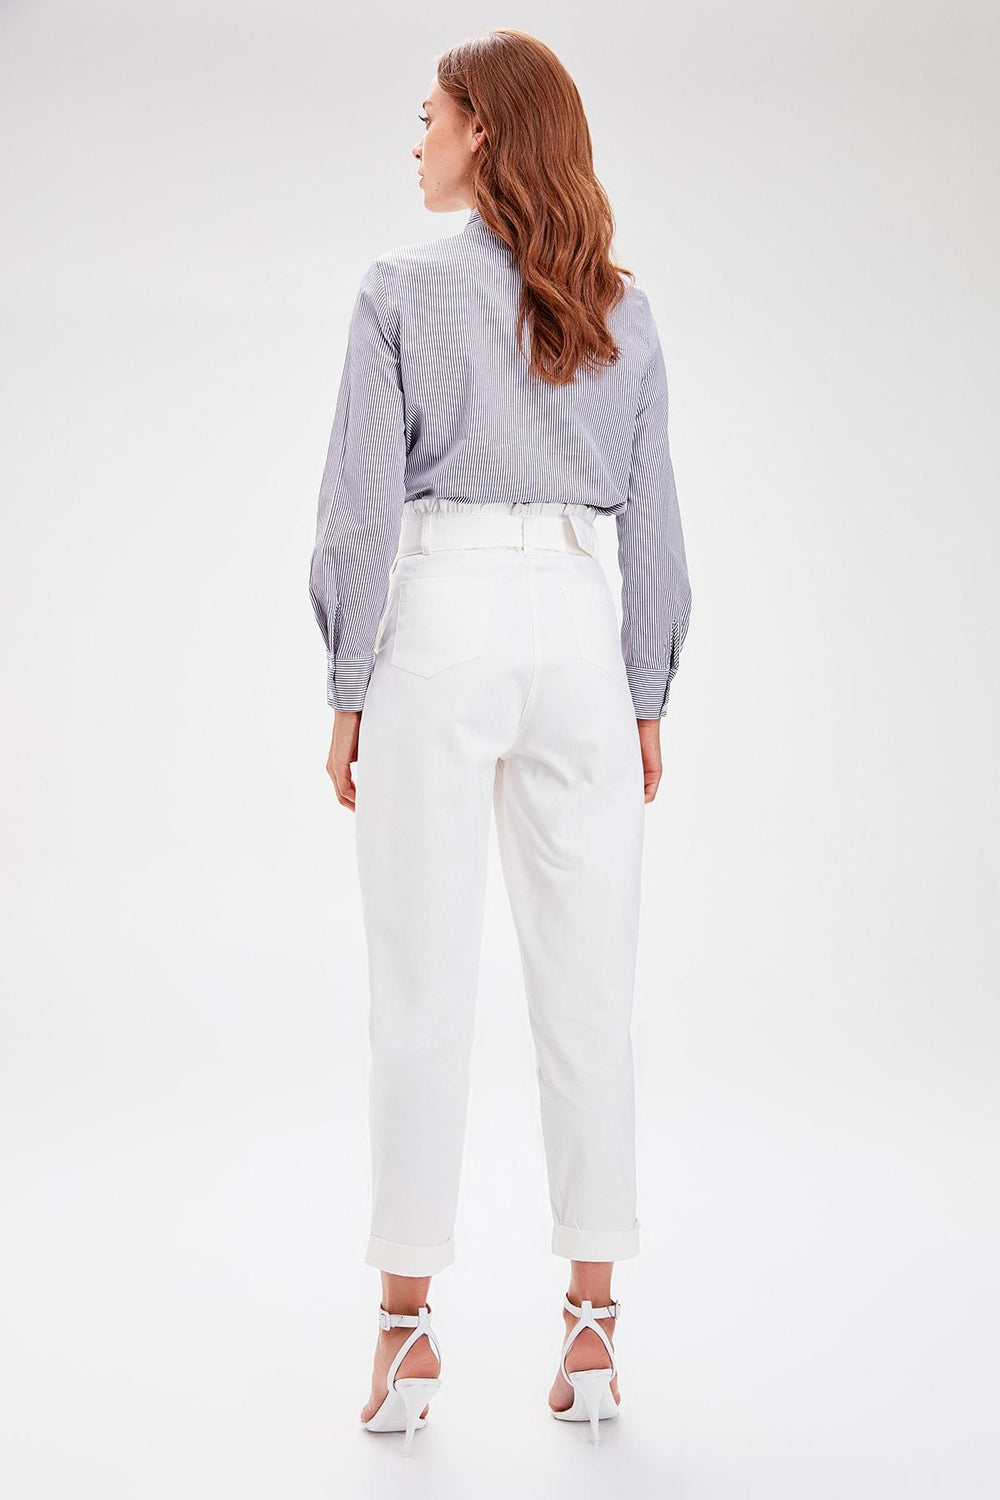 Miss Zut Miss Zut White Arched Pants Miss Zut &CO